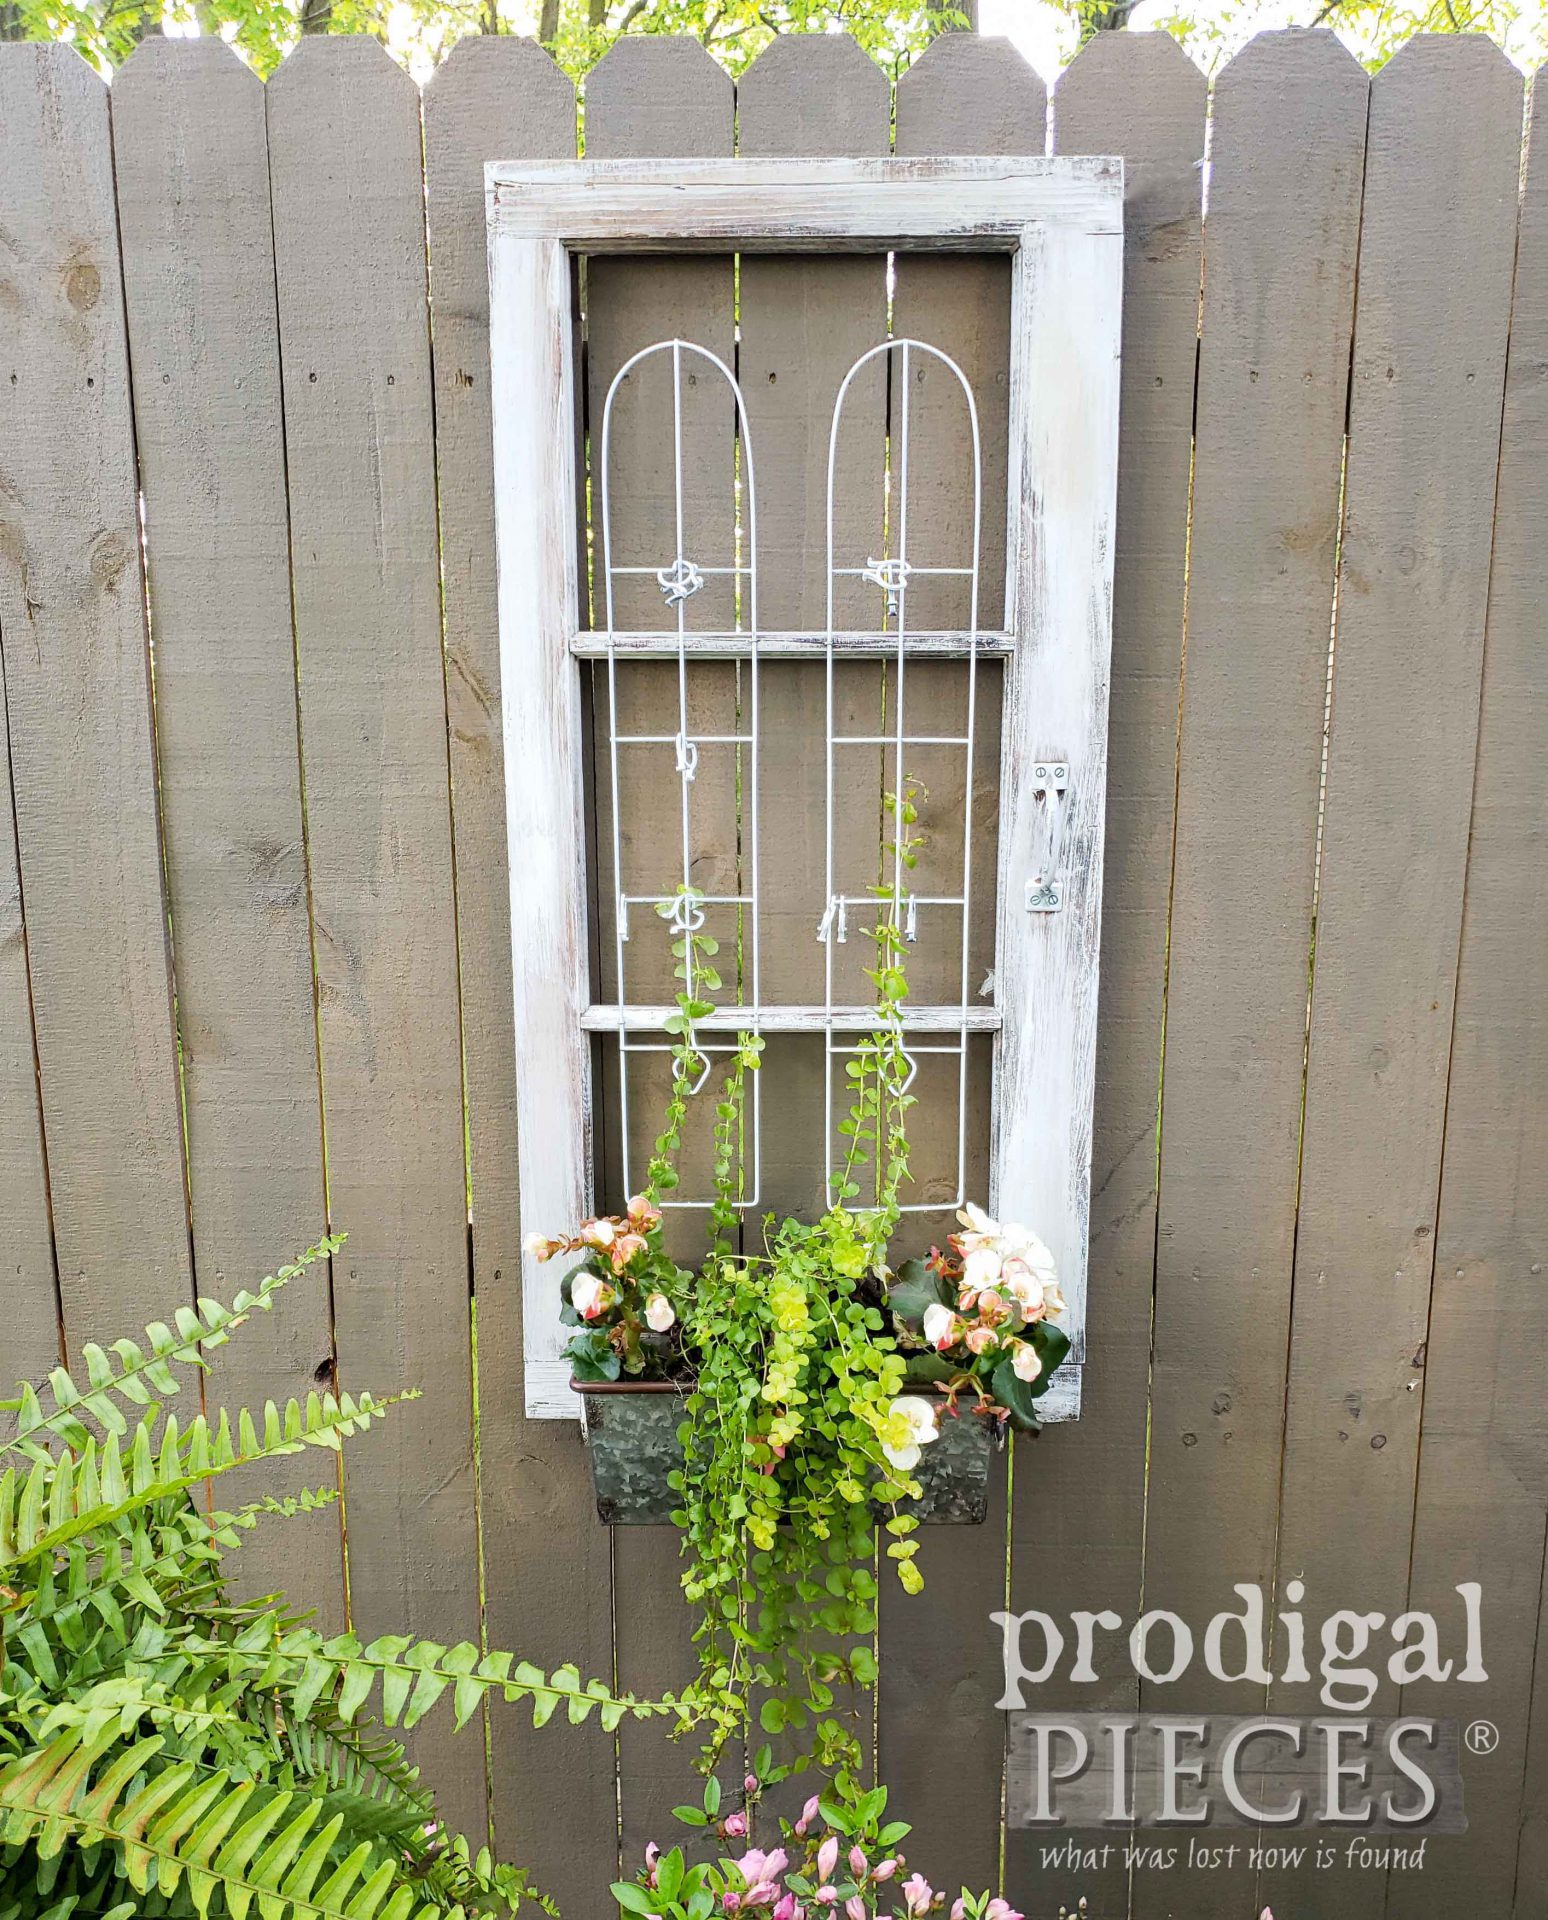 Repurposed Window Planter with Trellis for Garden Art by Larissa of Prodigal Pieces | prodigalpieces.com #prodigalpieces #repurposed #upcycled #diy #home #garden #homedecor